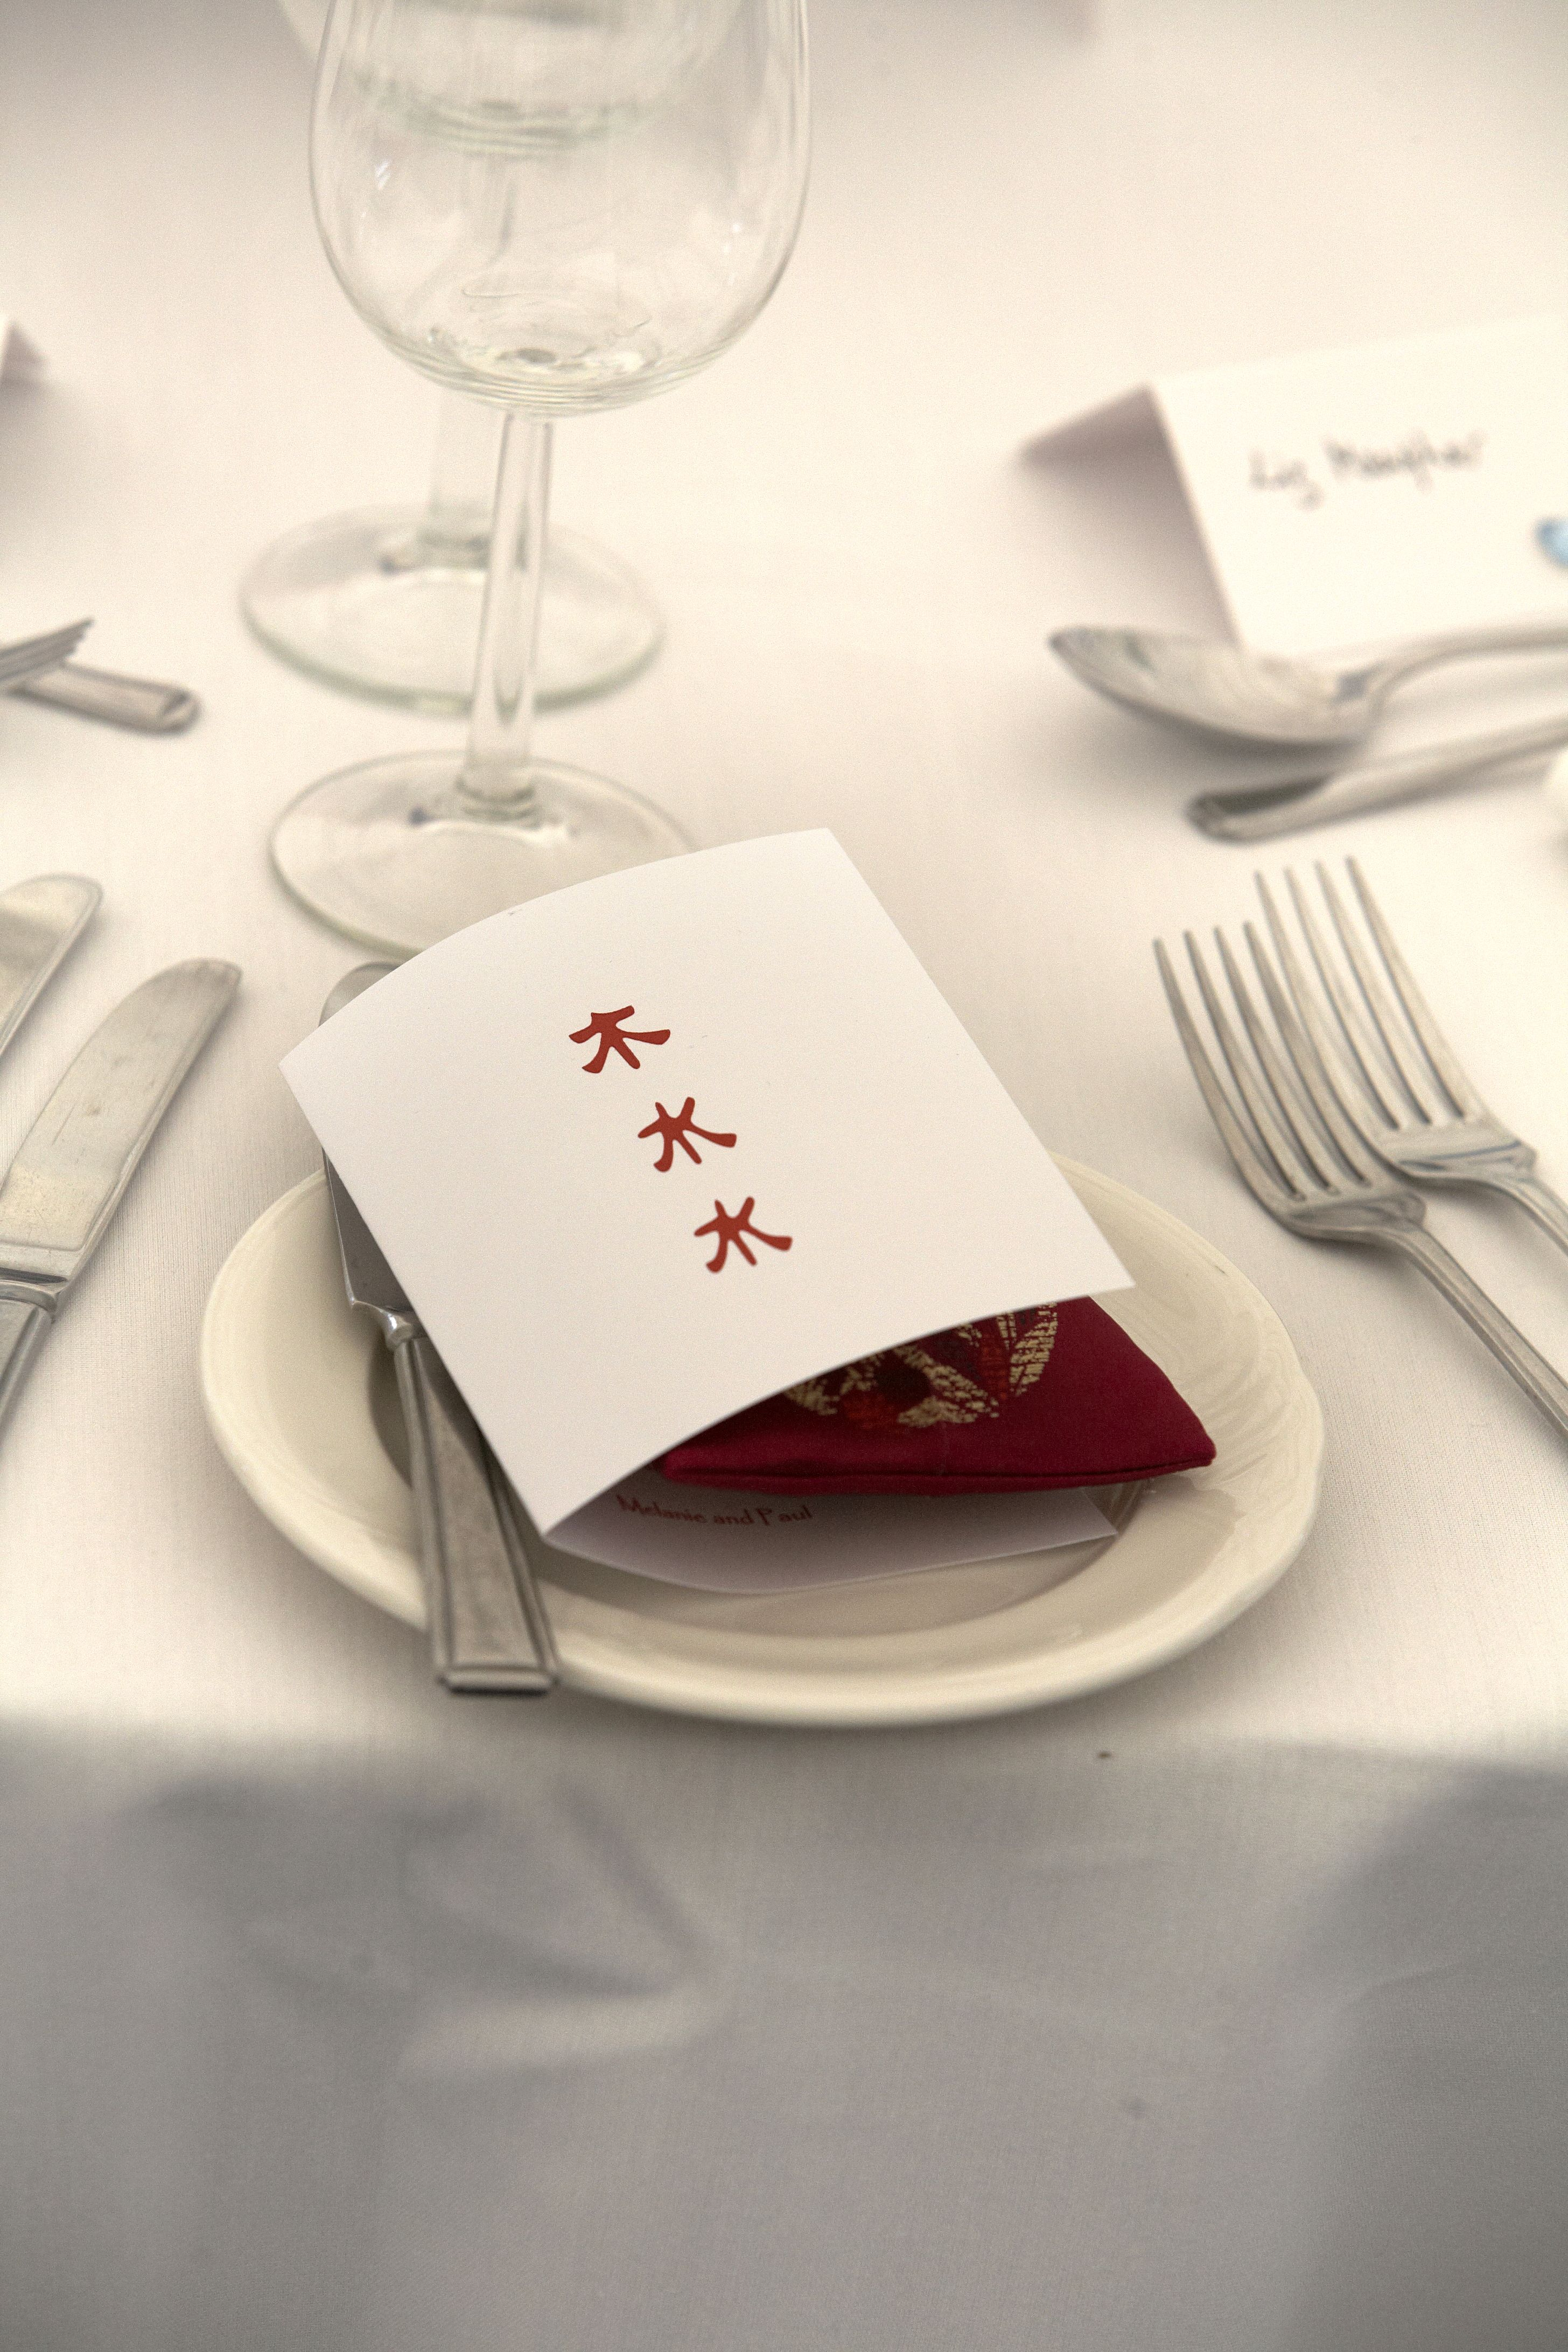 Table setting detail